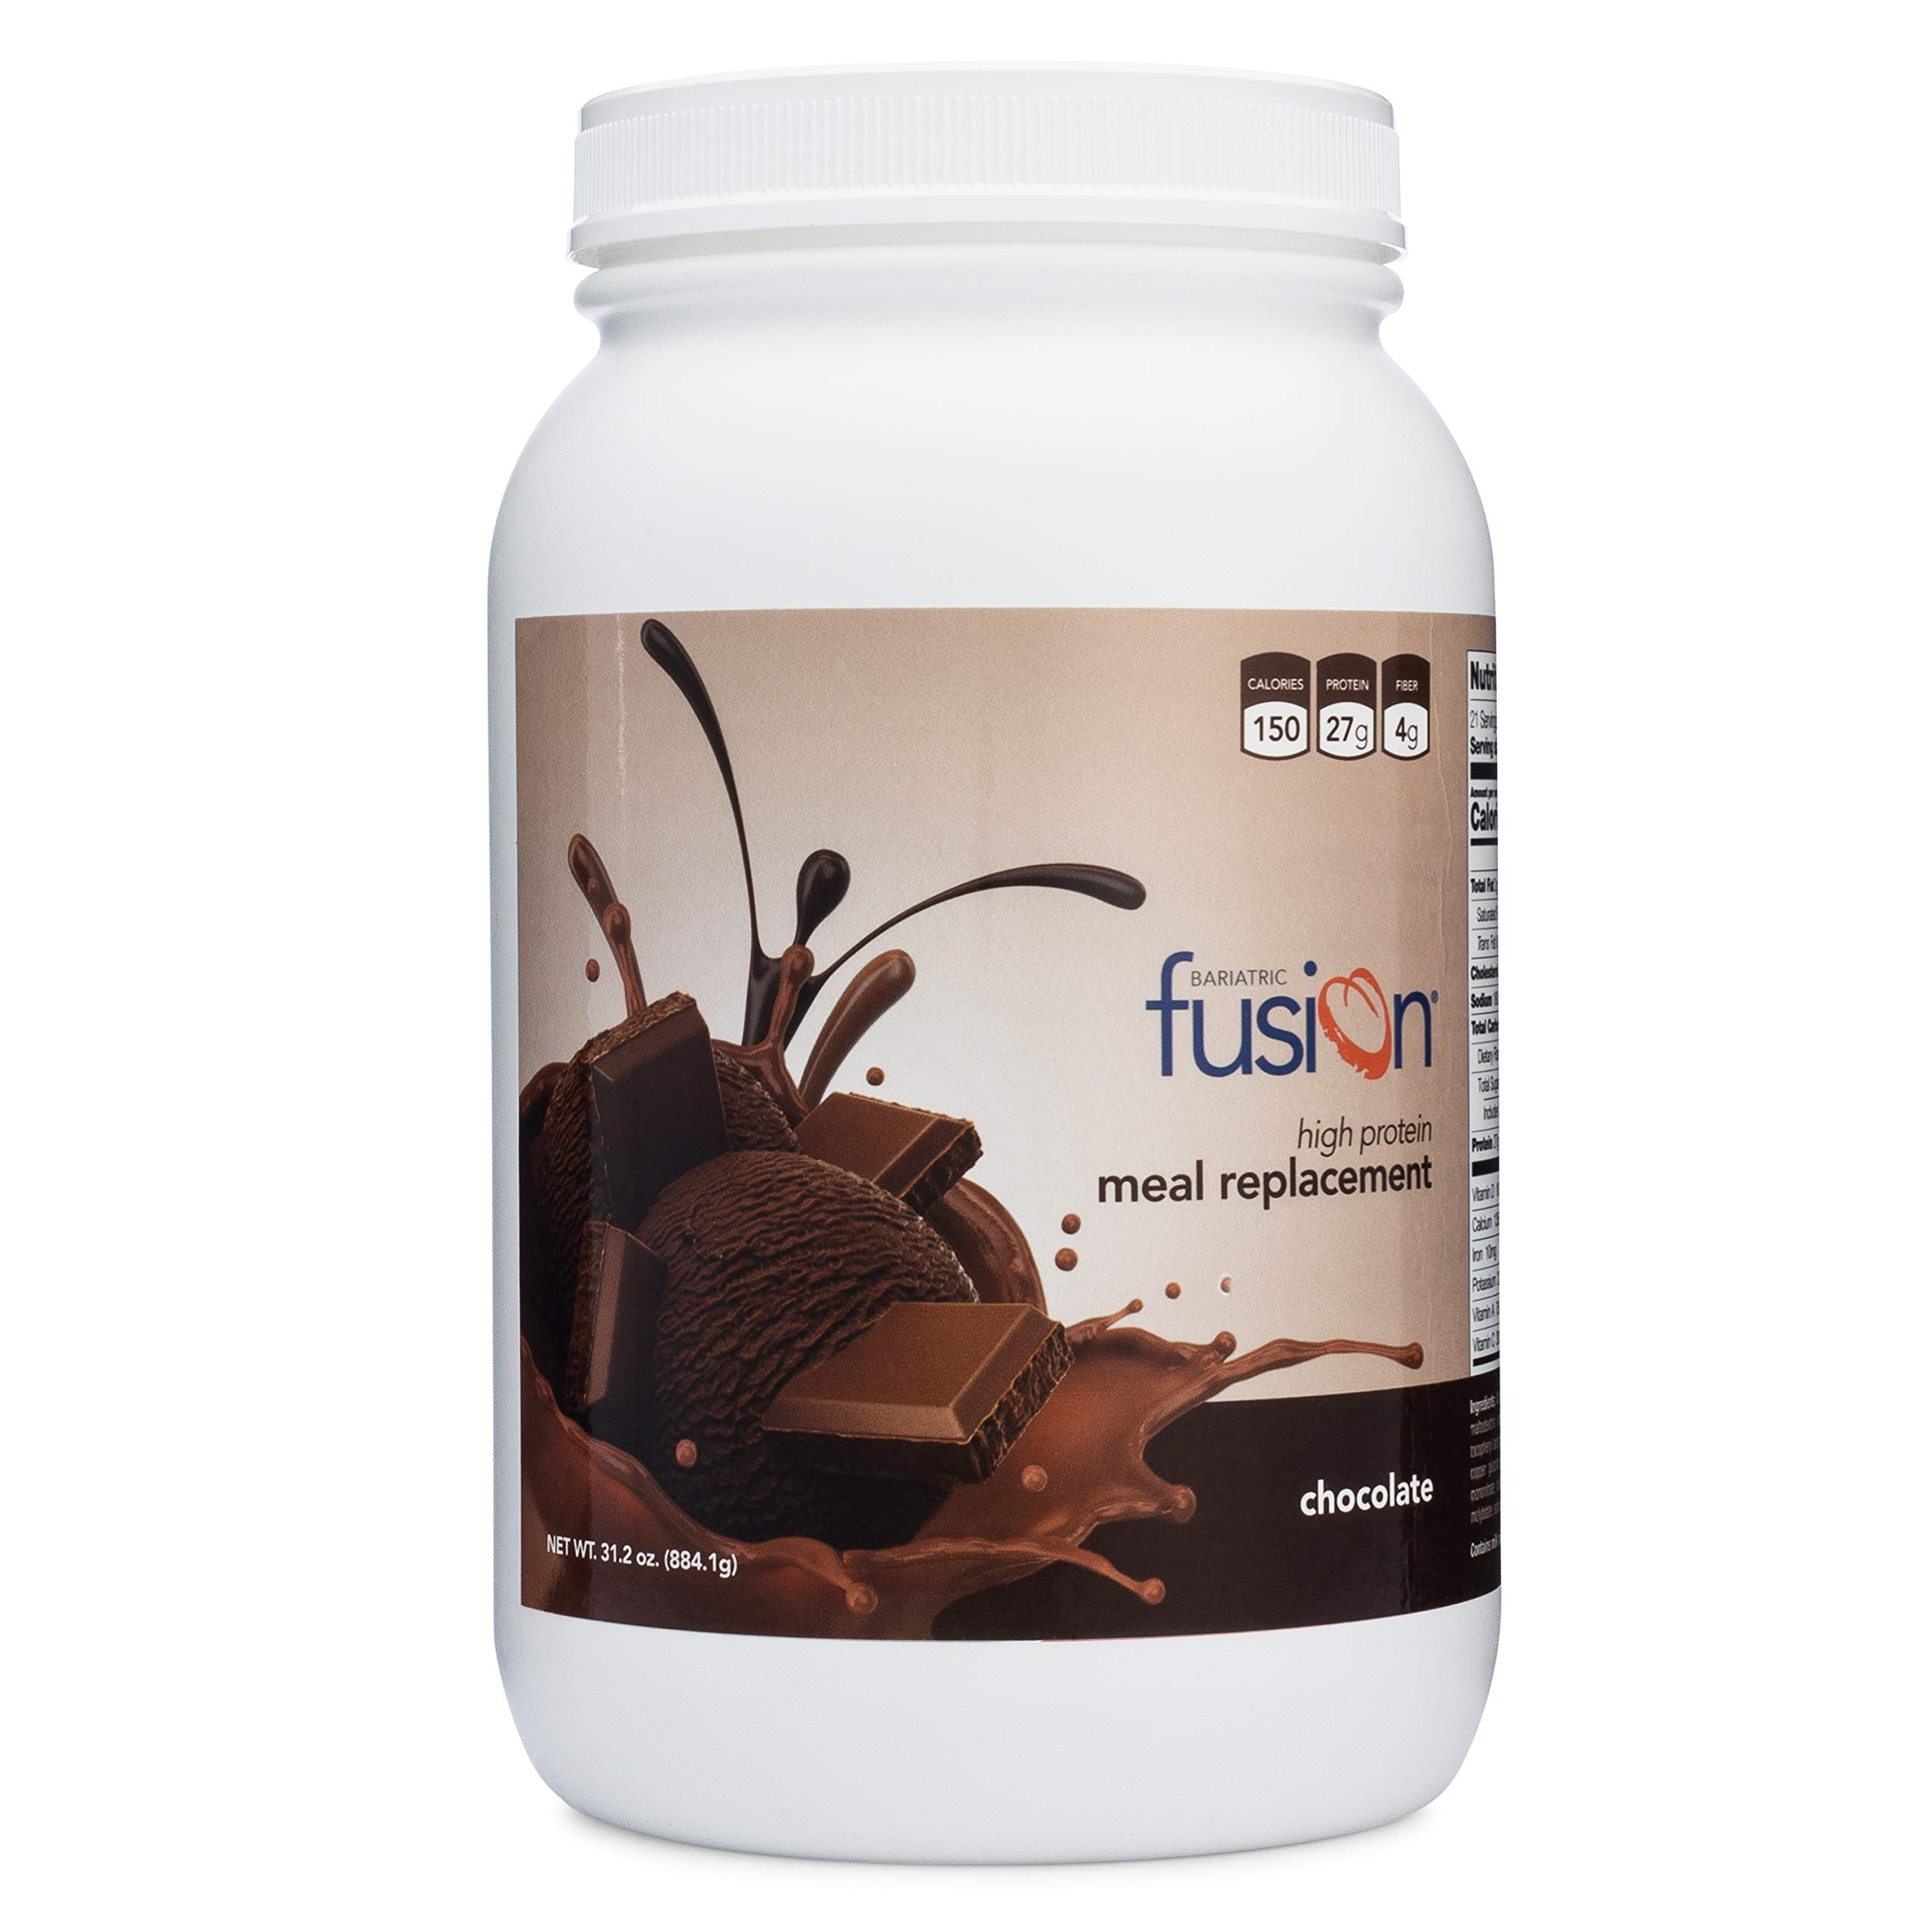 Bariatric Fusion Chocolate Meal Replacement Protein 21 Serving Tub for Bariatric Surgery Patients Including Gastric Bypass & Sleeve Gastrectomy